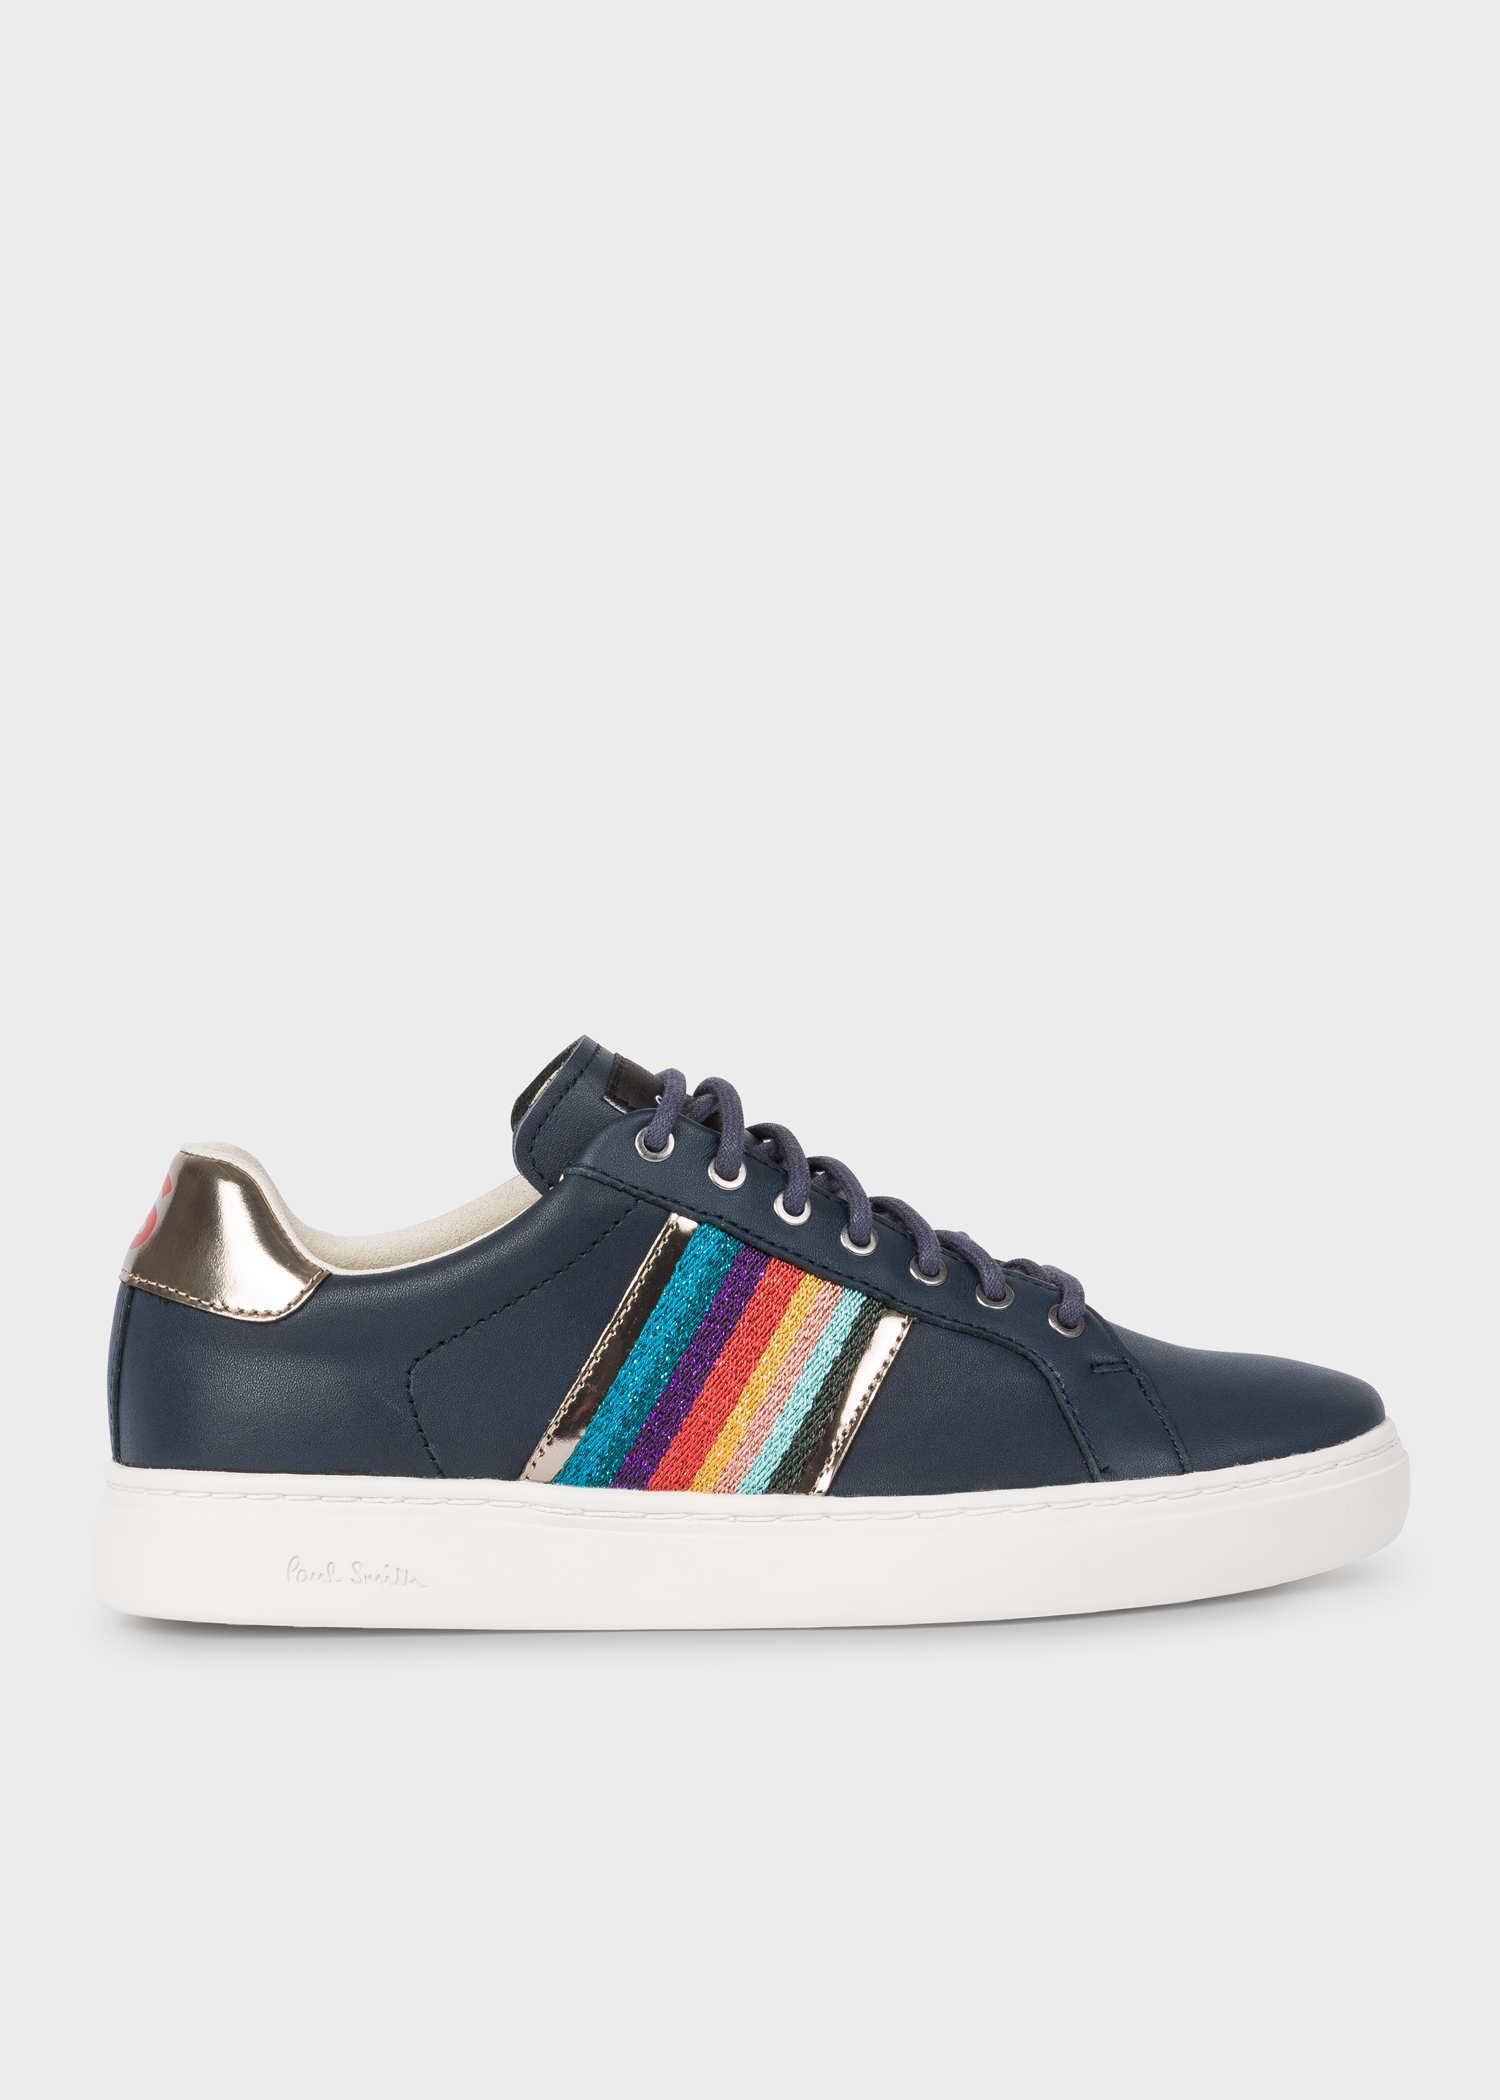 025c6c5a2036 Side view - Women's Navy Glitter 'Artist Stripe' Leather 'Lapin' Trainers  With